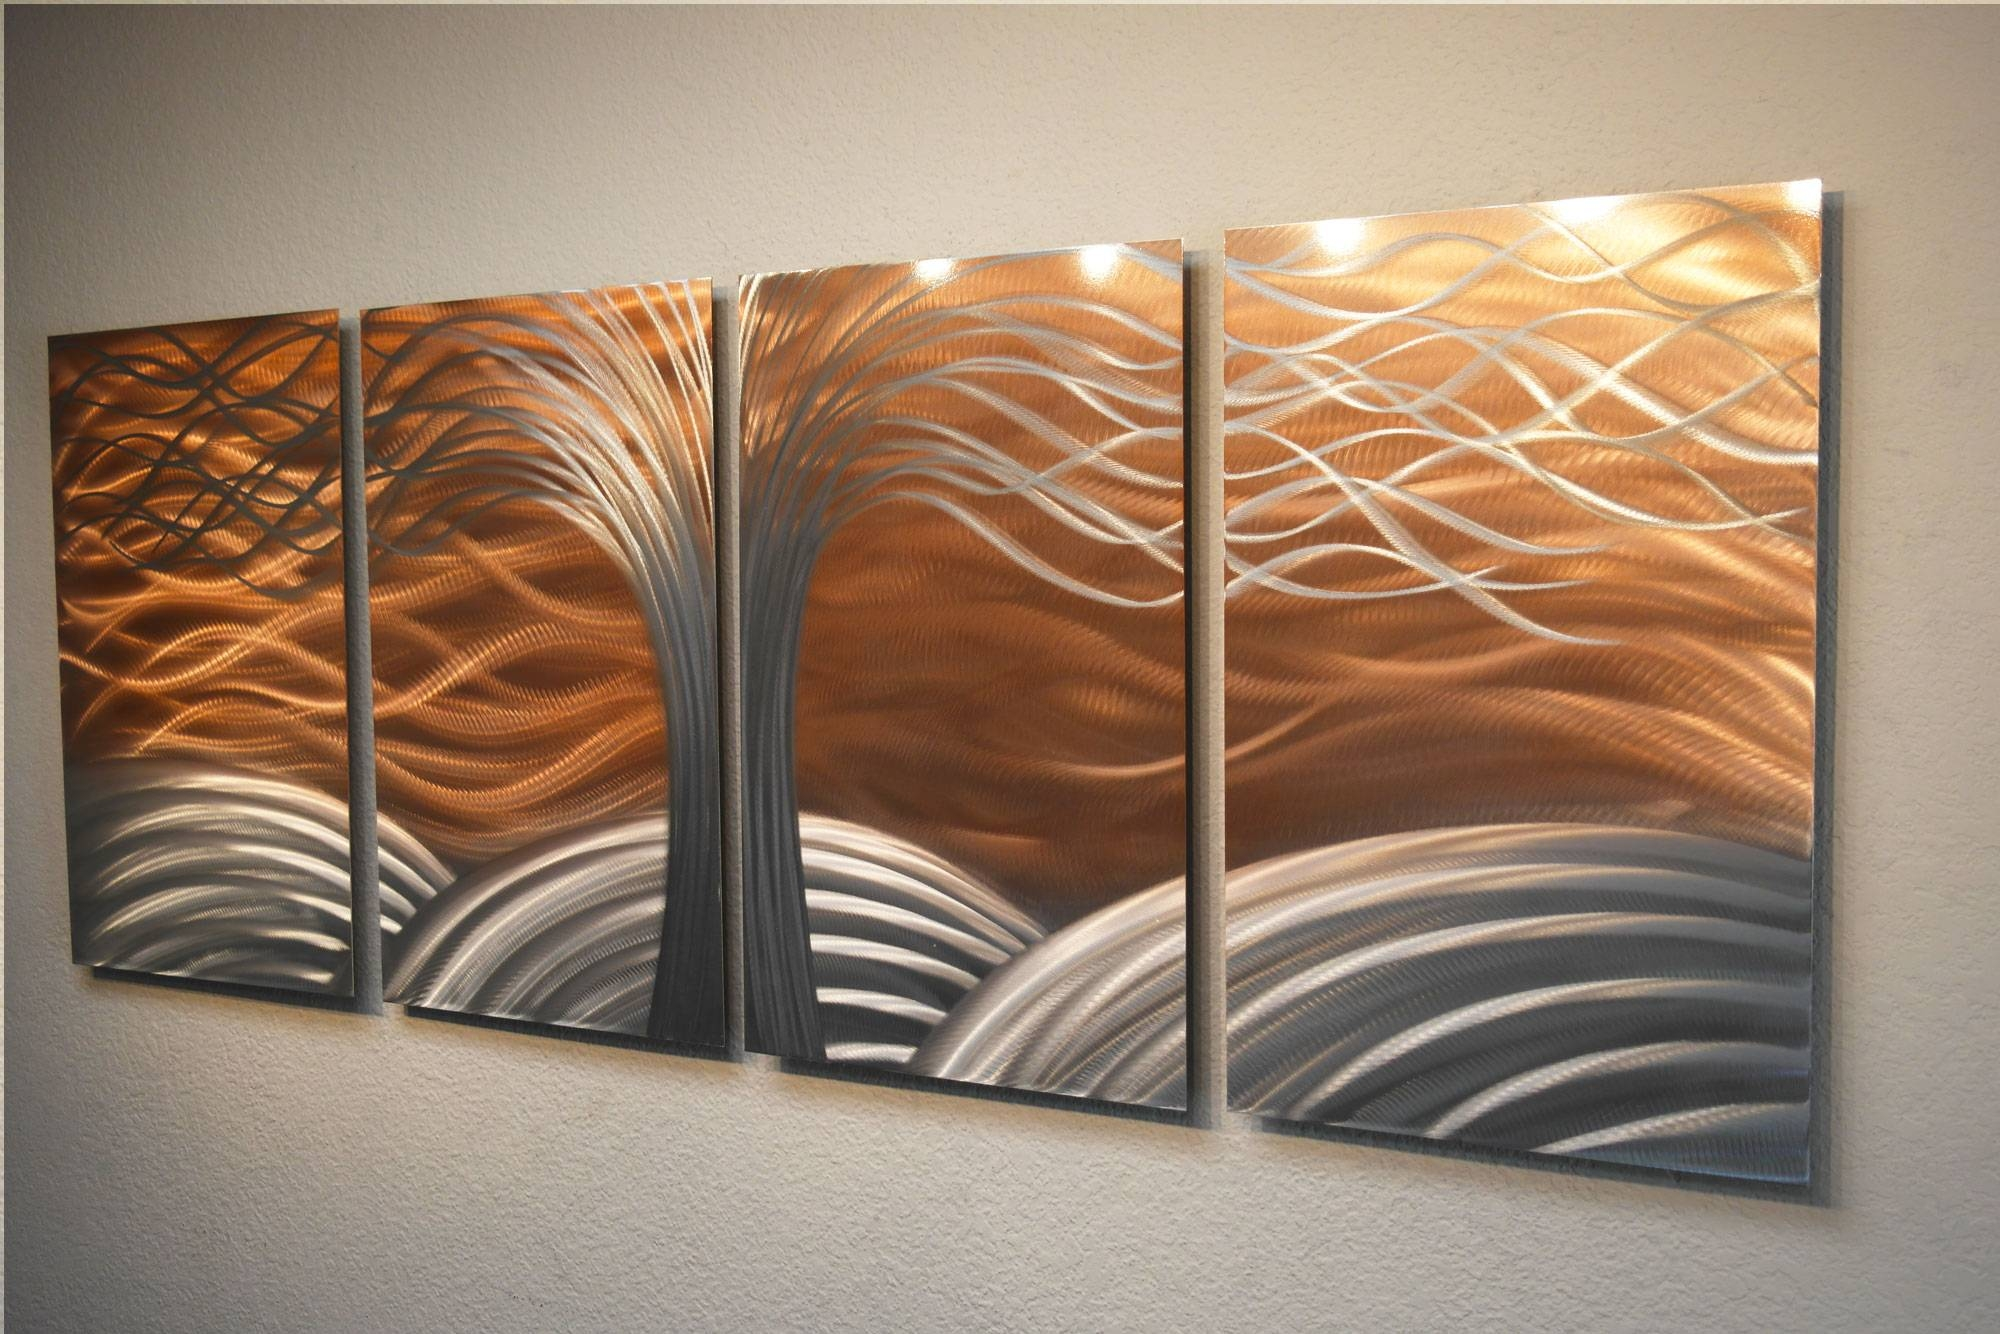 Tree Of Life Bright Copper – Metal Wall Art Abstract Sculpture With Regard To Most Recent Copper Metal Wall Art (View 10 of 20)